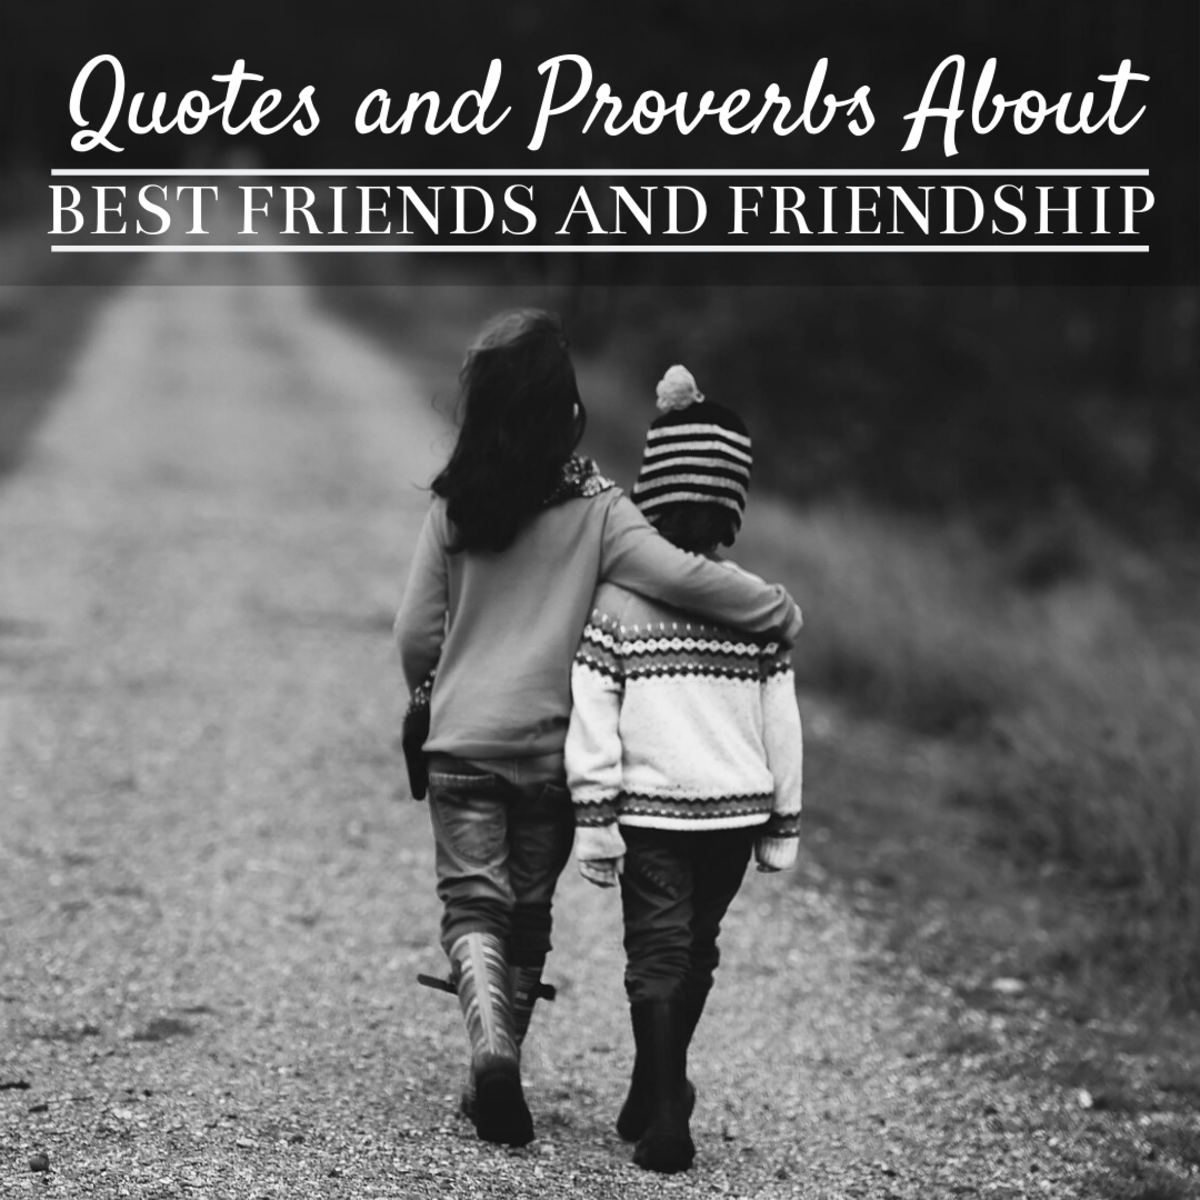 best friends quotes sayings and proverbs about friendship